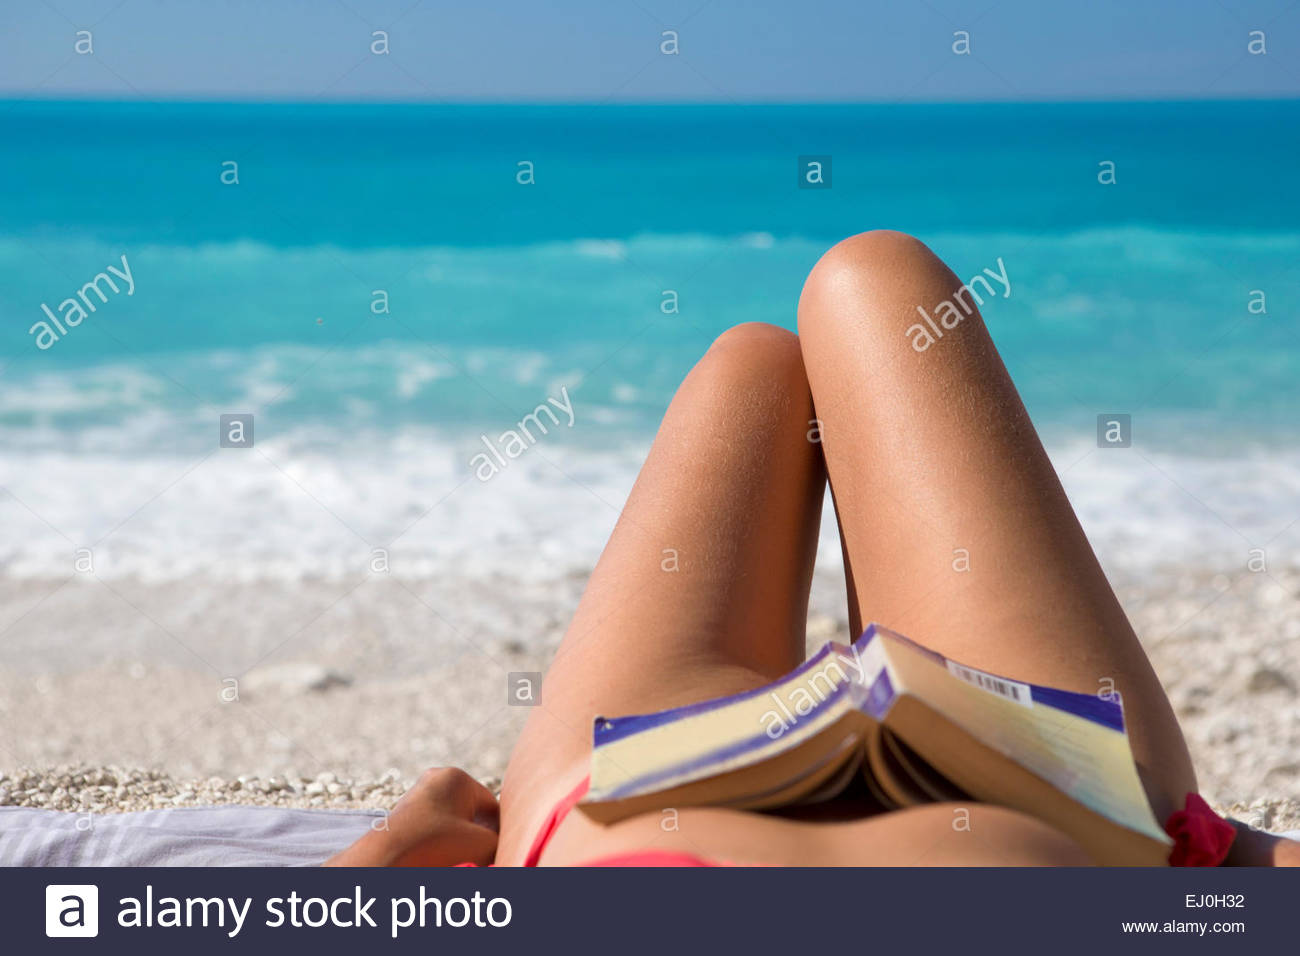 woman, with book resting on stomach, lying on towel on sunny beach - Stock Image